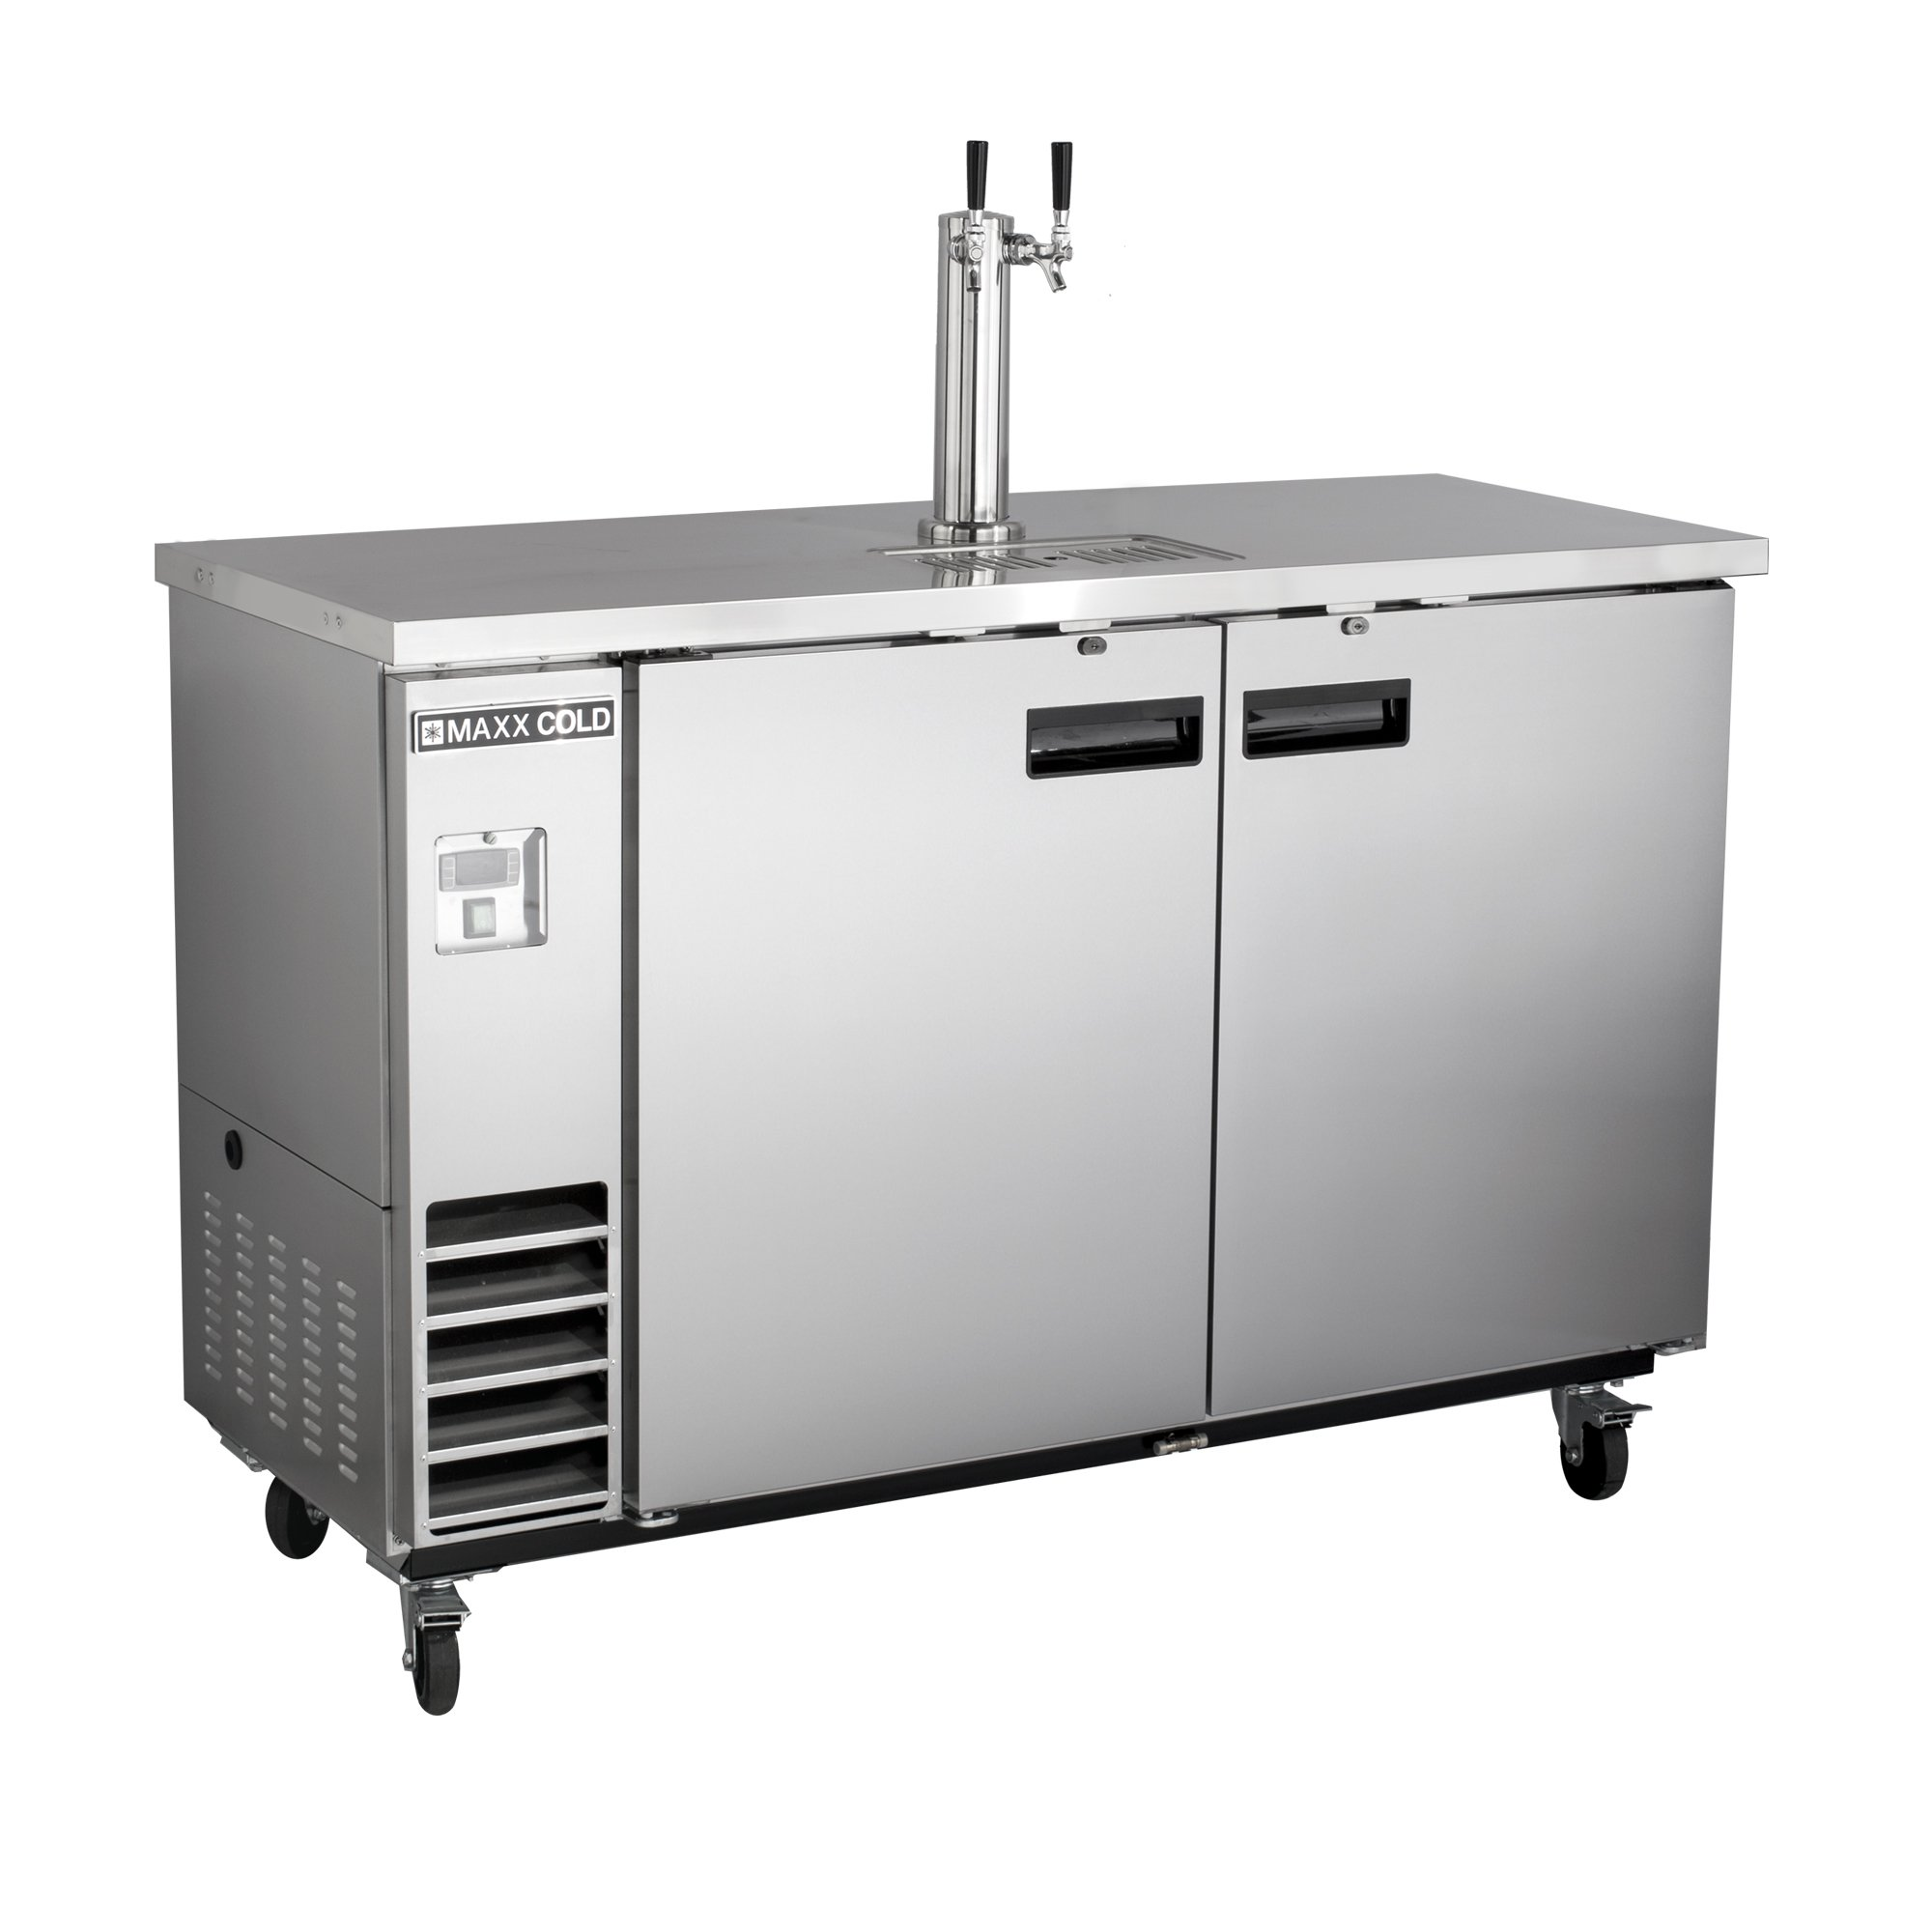 Maxx Cold MXBD60-1S Commercial Stainless Steel NSF Bar Direct Draw Kegerator Beer Dispenser Cooler with 1 Single Tower Tap Holds 2 Half 1/2 Size Keg, 61.1 Inch Wide 14.2 Cubic Feet , Silver